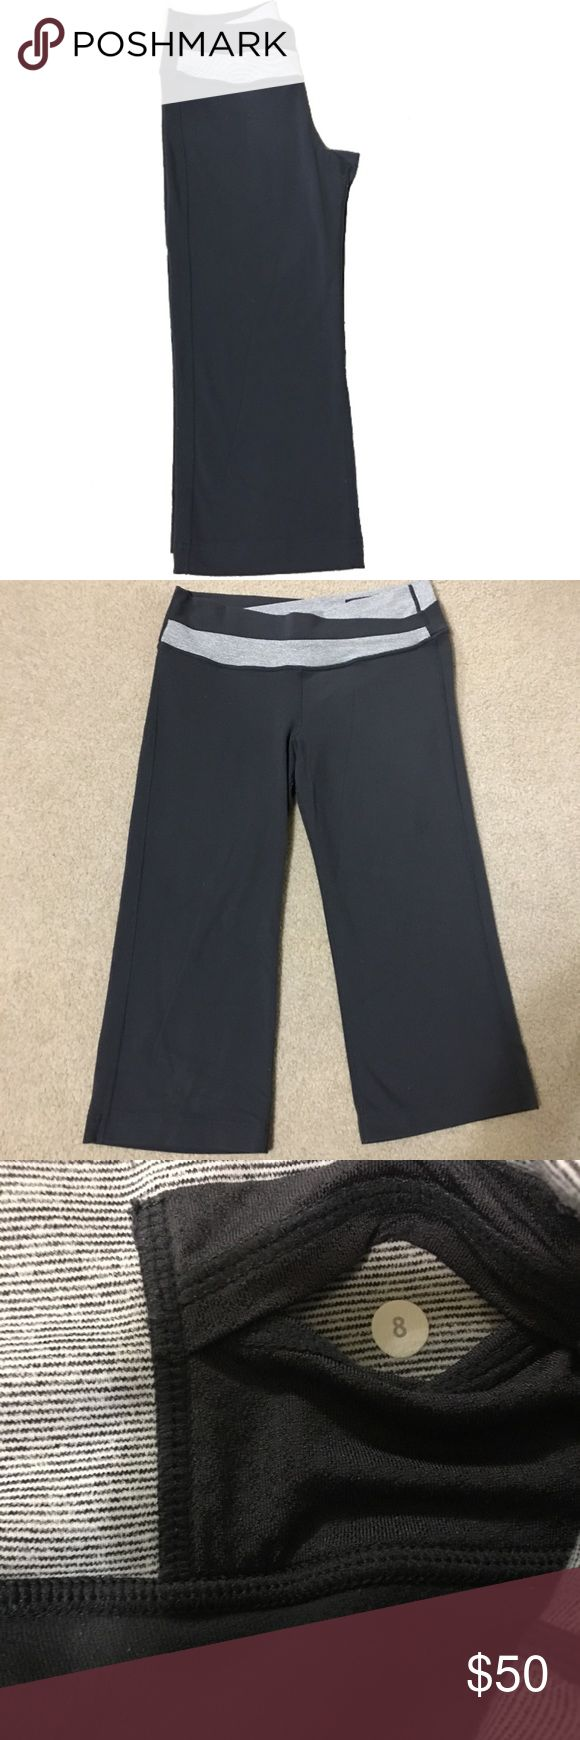 Lululemon Astro cropped pants Material is mainly black with black and white stripes.  In great gently used condition  Offers welcome! lululemon athletica Pants Ankle & Cropped